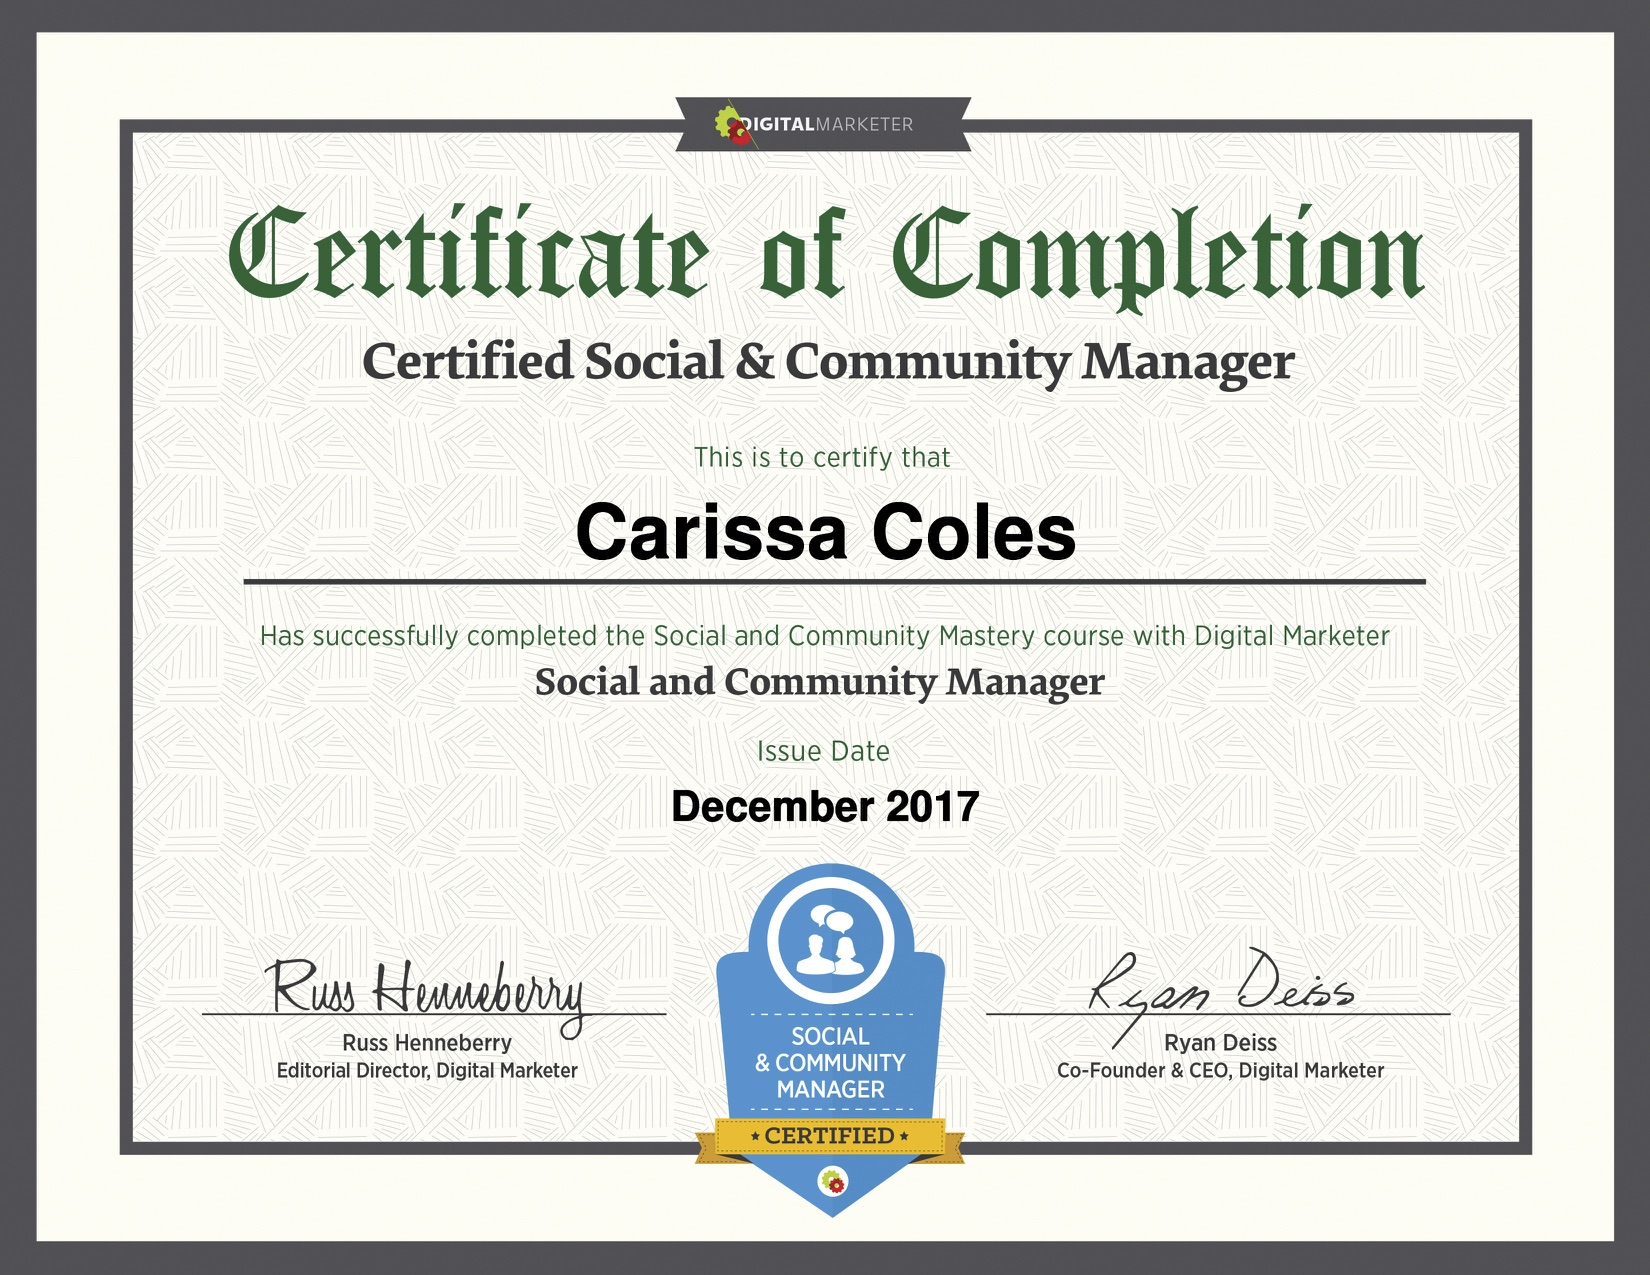 digital marketer social media and community manager certification